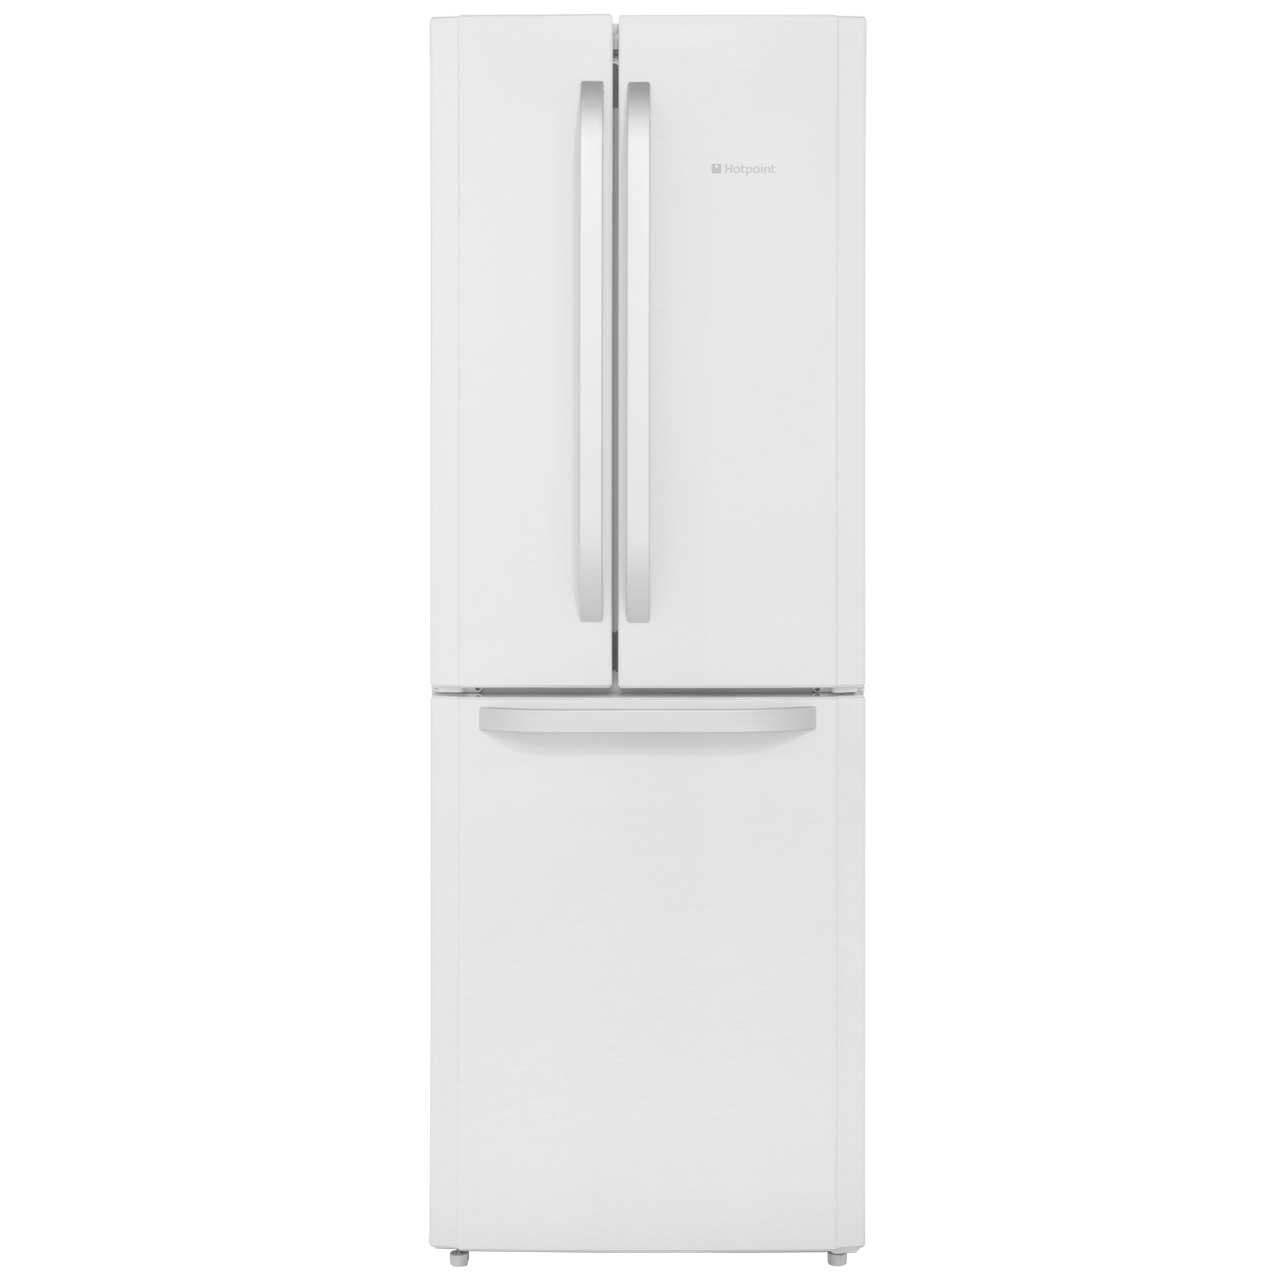 Hotpoint Trio FFU3DW Free Standing Fridge Freezer Frost Free in Gloss White